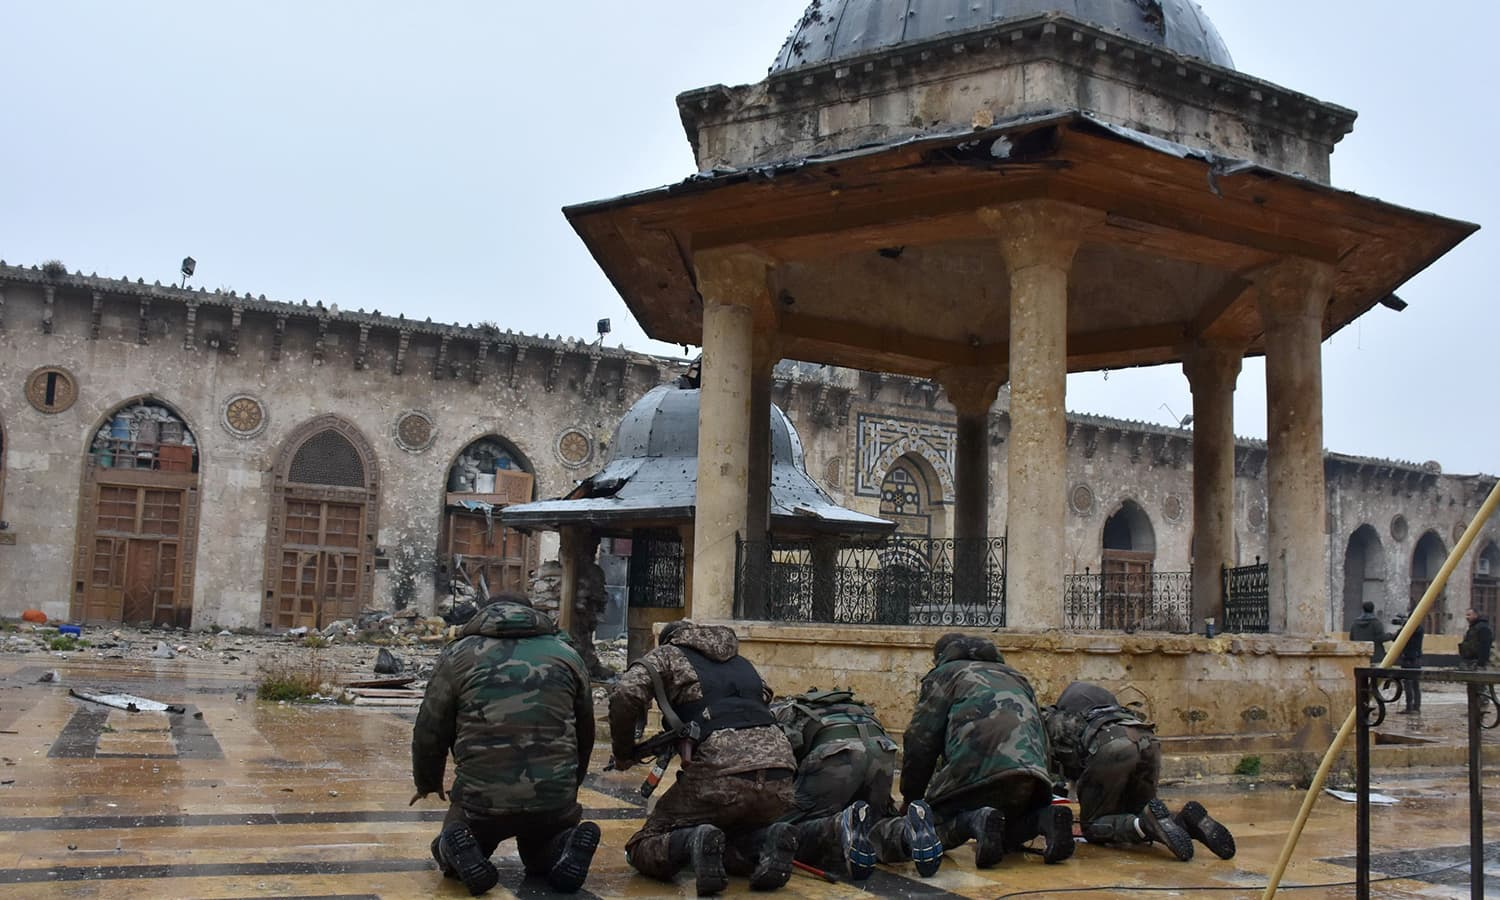 Syrian pro-government forces pray at the Umayyad mosque in the old city of Aleppo. ─AFP